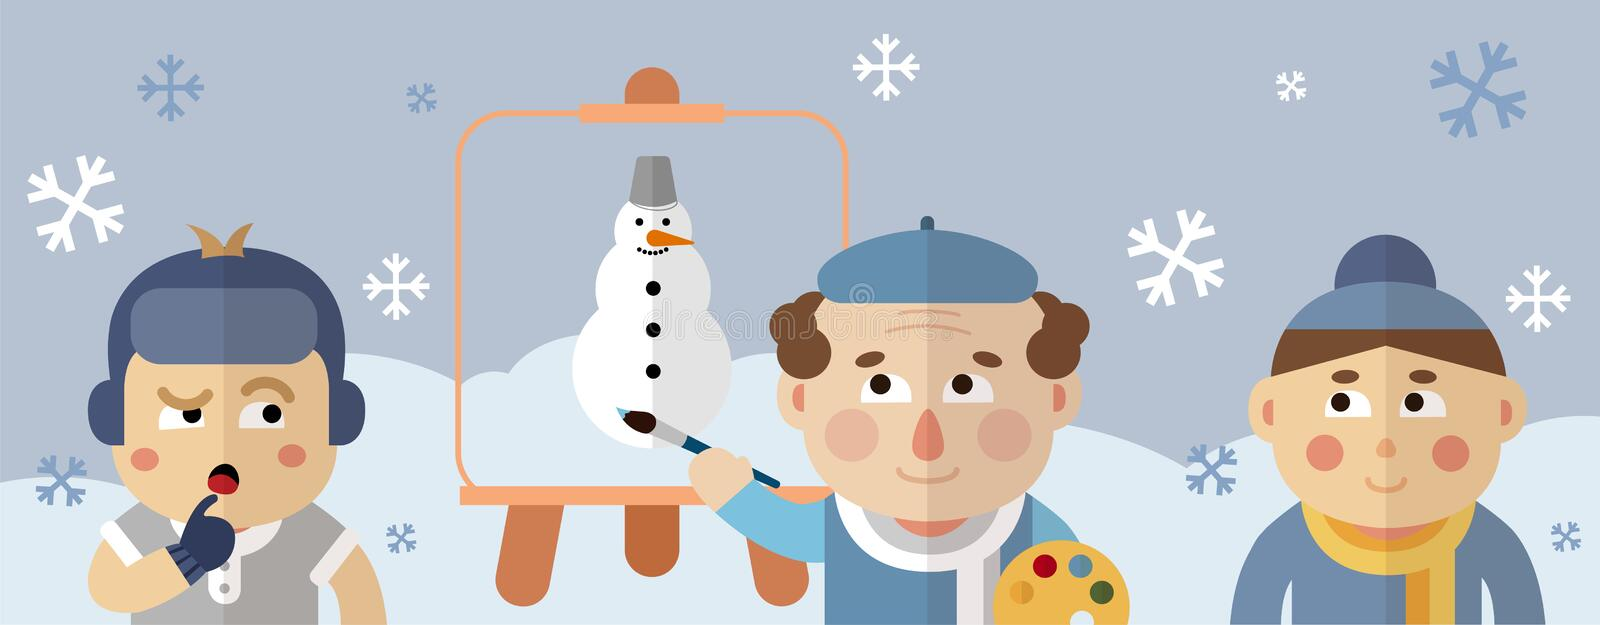 The painter draws a winter landscape with a snowman and snowflakes royalty free illustration